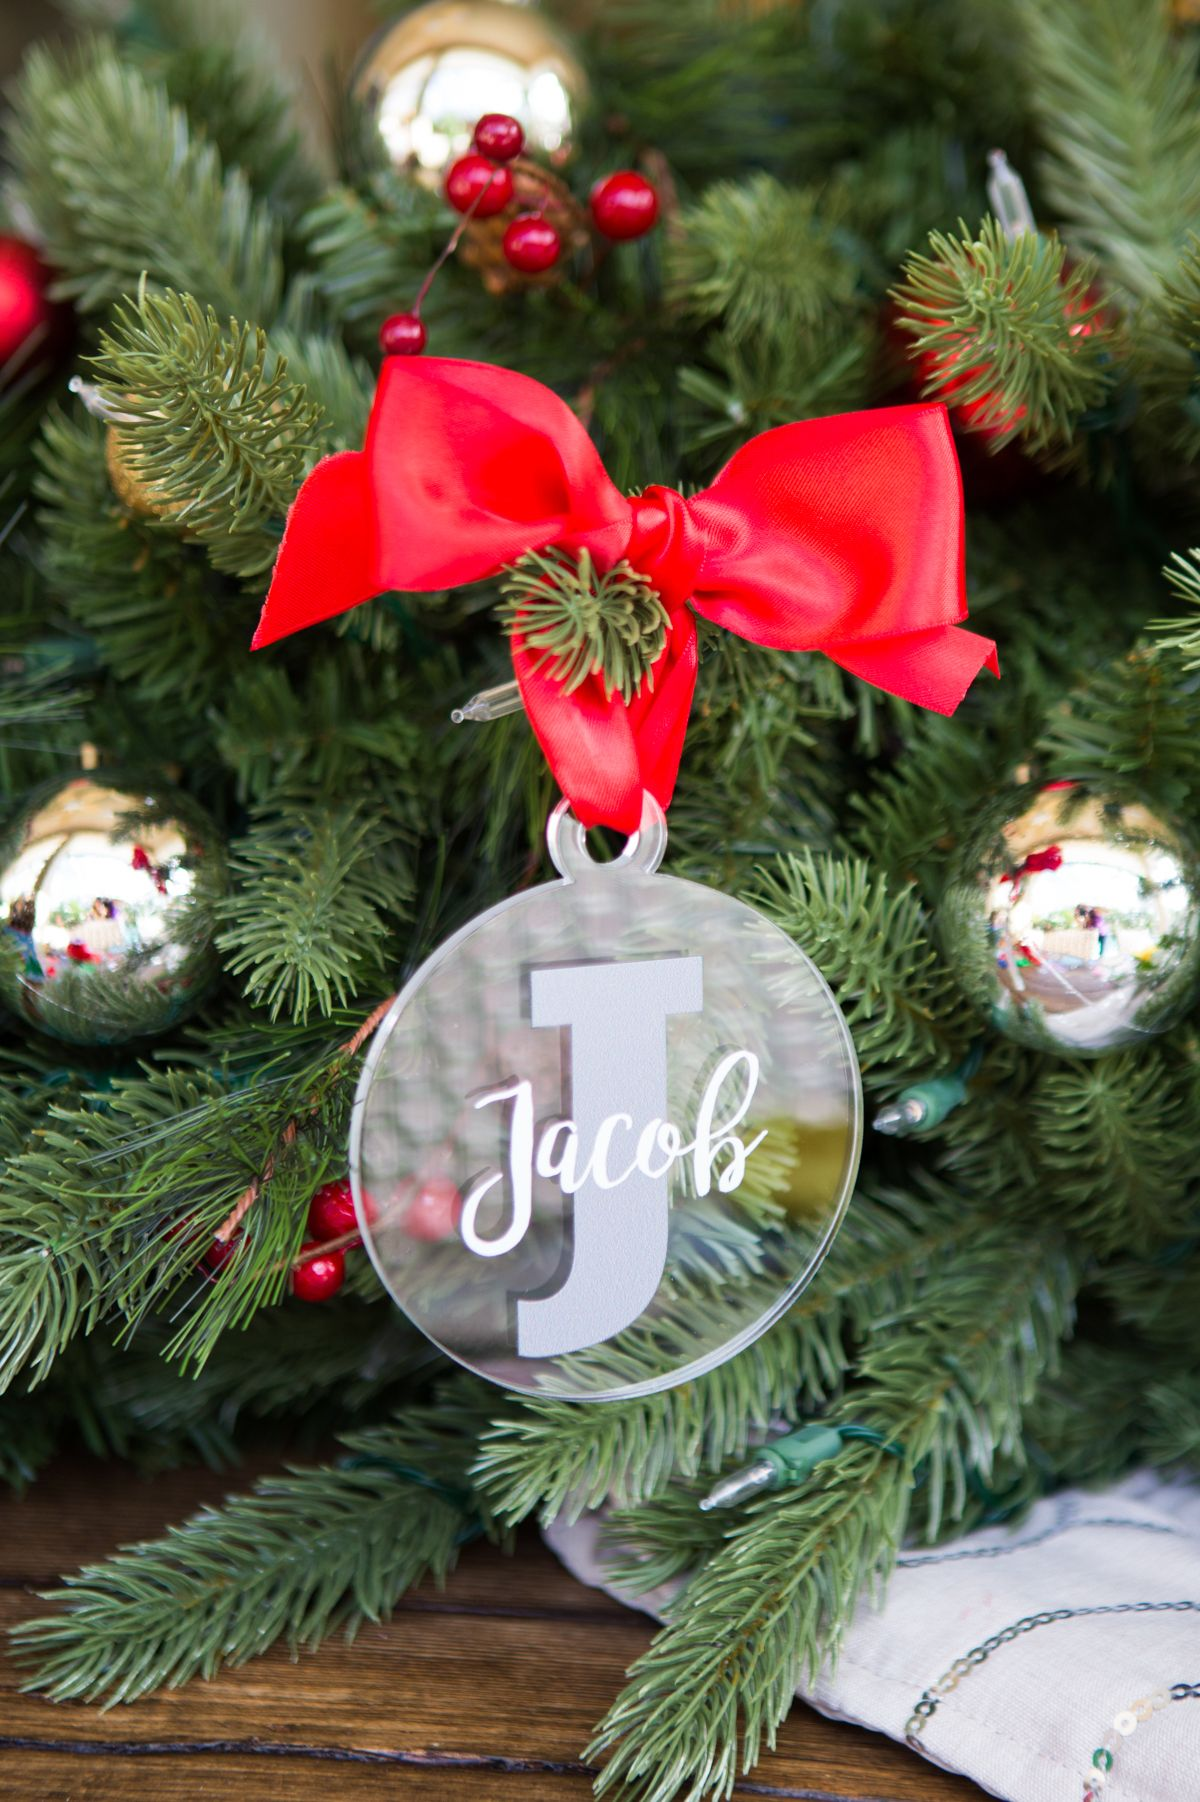 Christmas Ornament Personalized Name And Letter Clear Acrylic Etsy Personalized Christmas Ornaments Christmas Decorations Etsy Christmas Ornaments